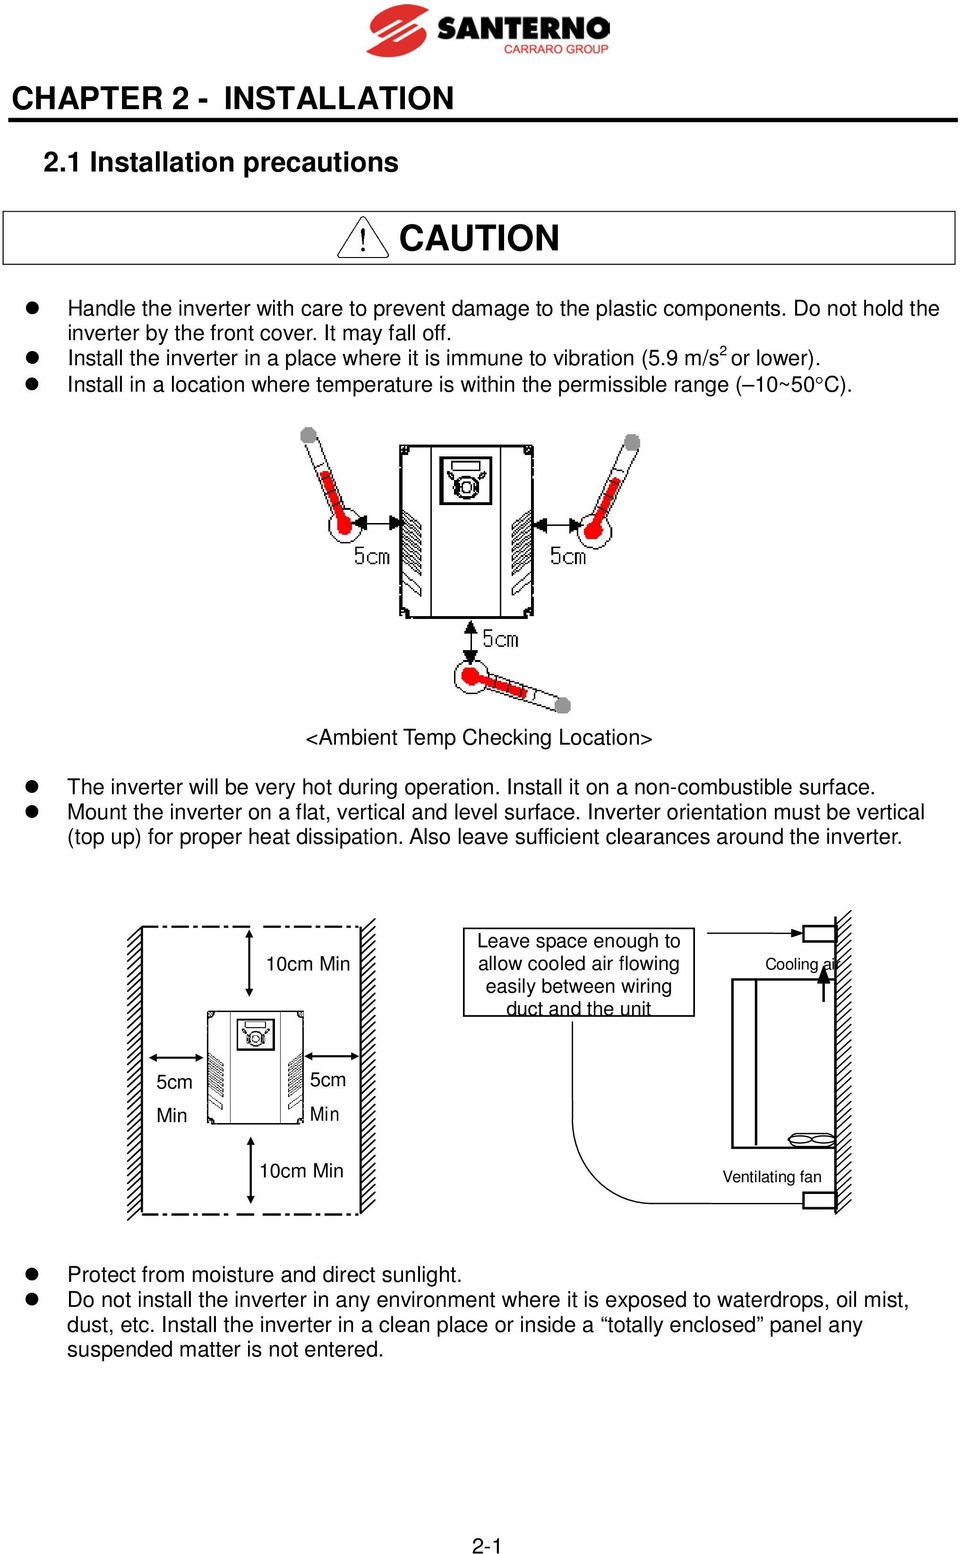 Sinus M User Manual Installation And Programming Instructions Pdf 7segdriverinverterwiringdiagramjpg Ambient Temp Checking Location The Inverter Will Be Very Hot During Operation Install